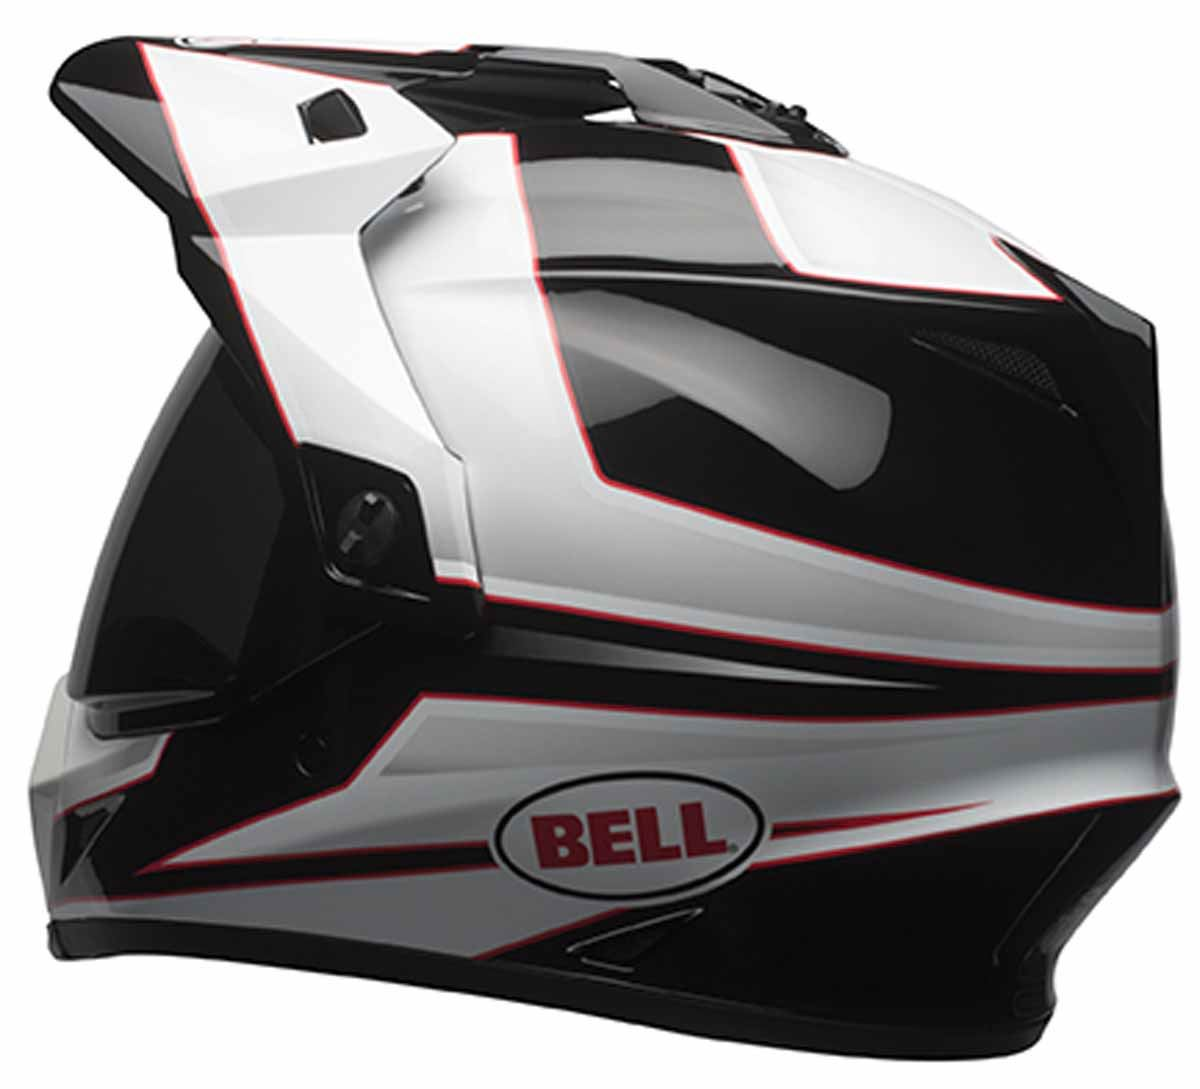 bell mx 9 adventure adv helmet dual sport touring motorcycle dot ebay. Black Bedroom Furniture Sets. Home Design Ideas